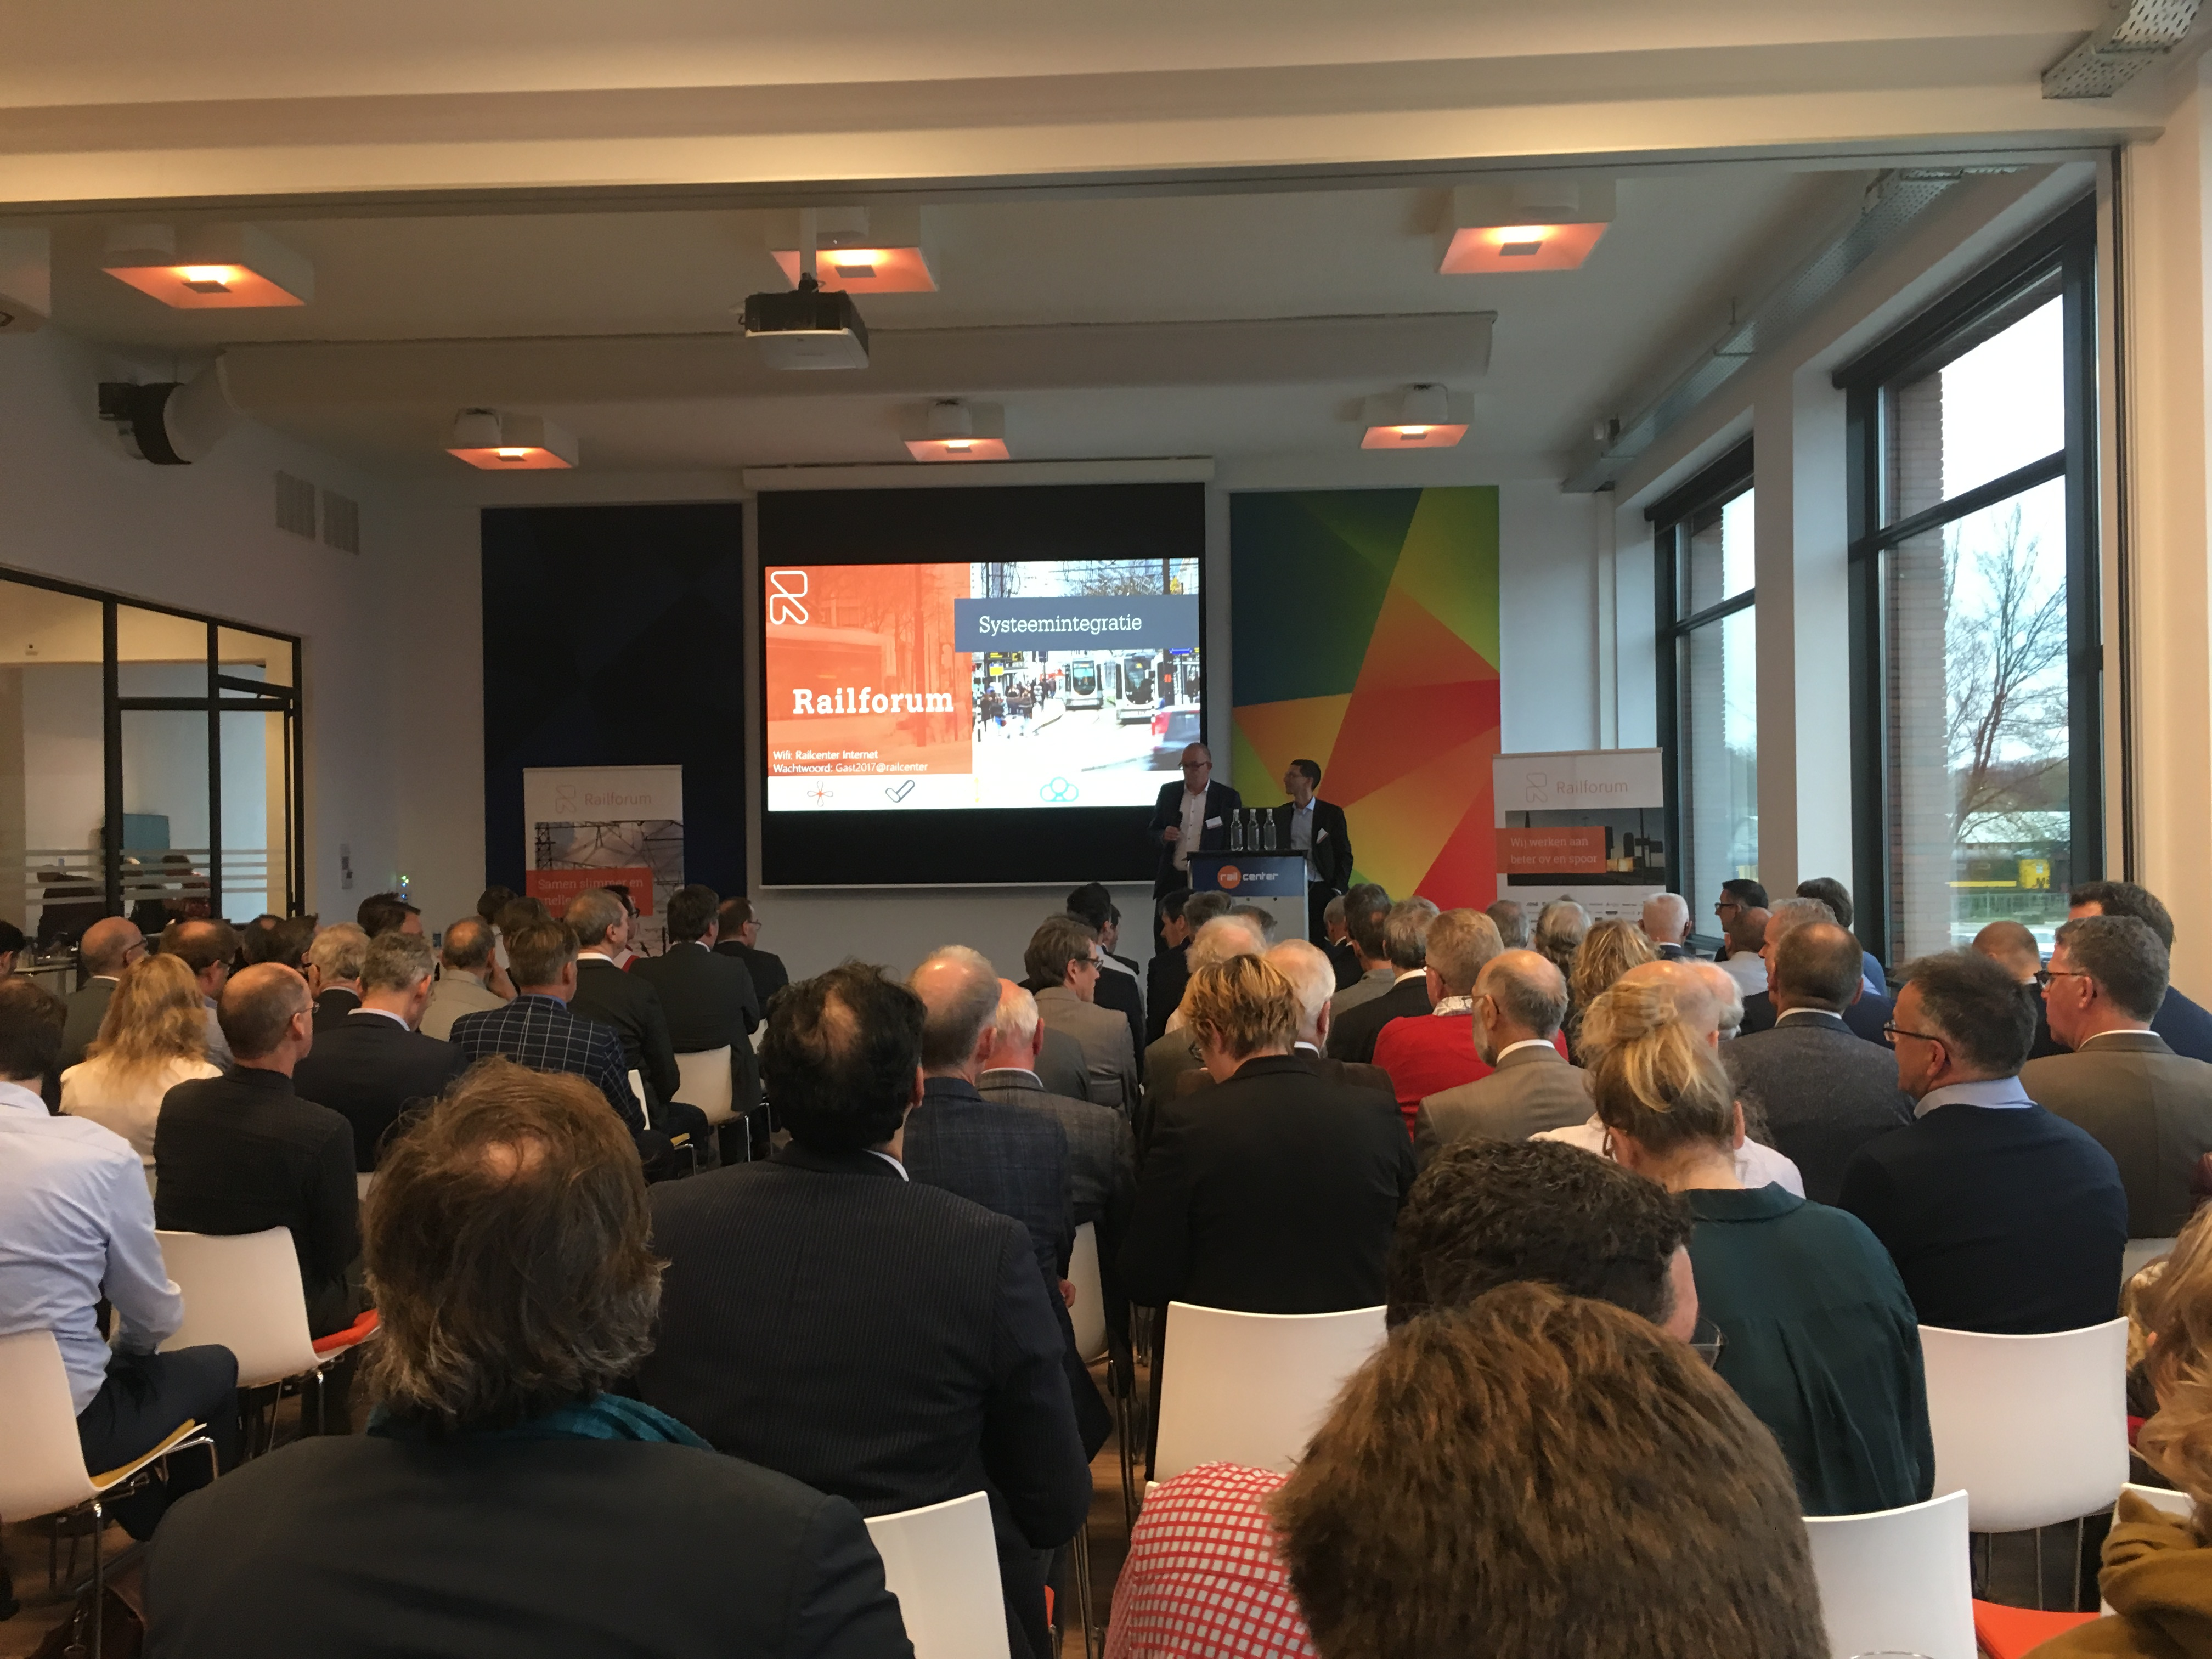 Systems Integration Event hosted by Railforum